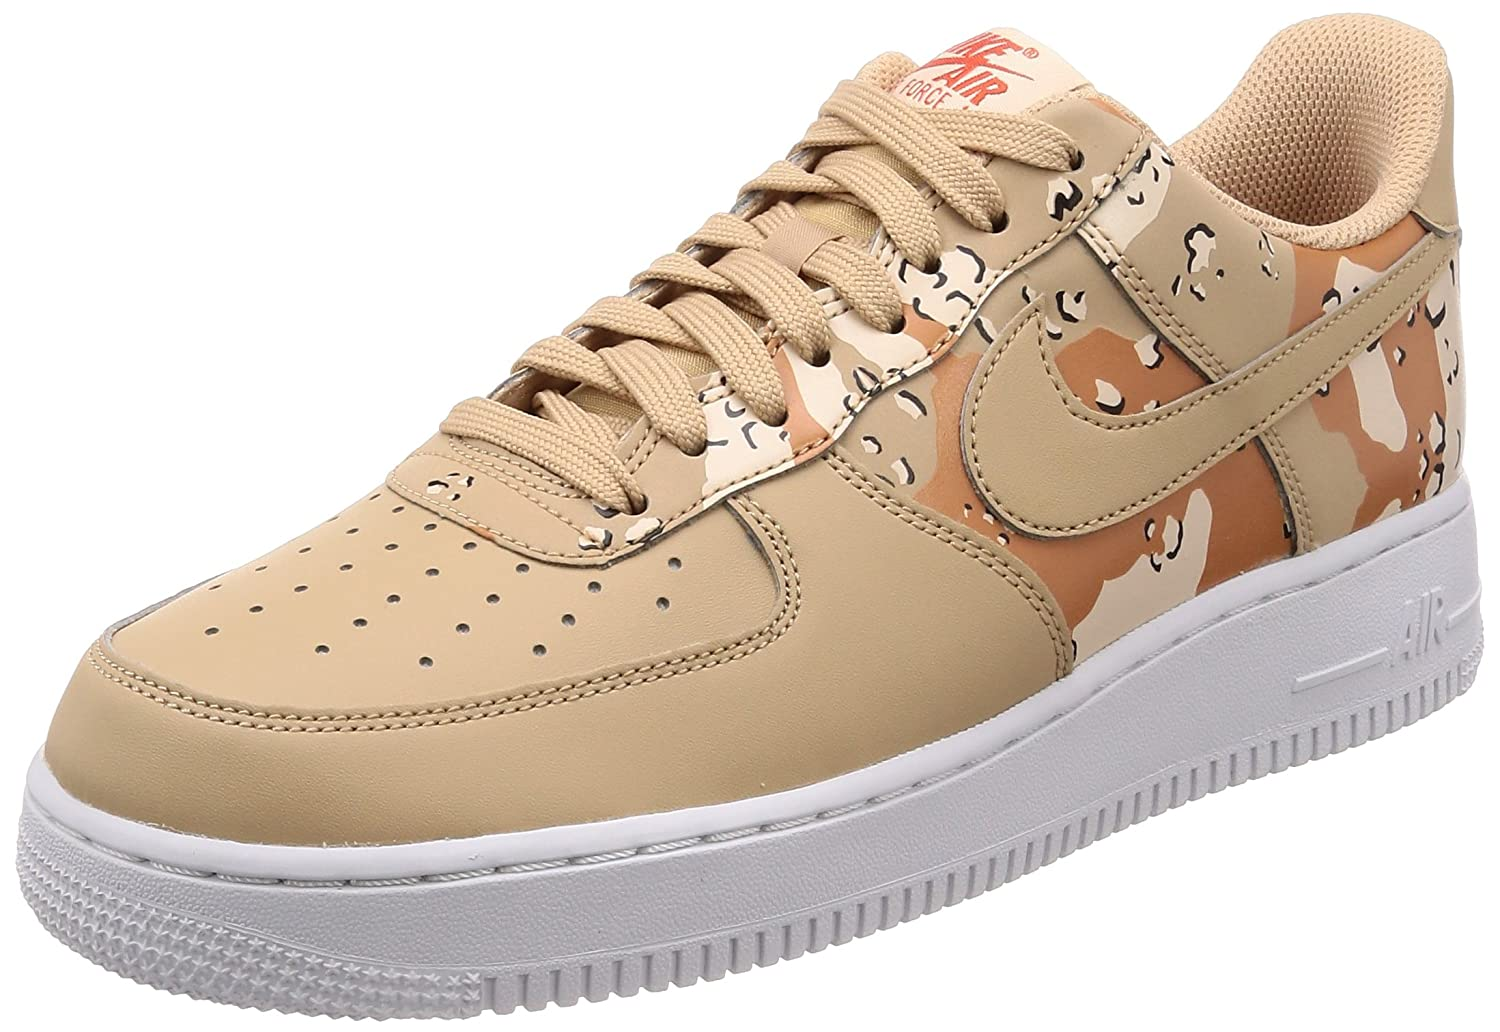 Nike AIR Force 1 07 LV8 Mens Basketball-Shoes